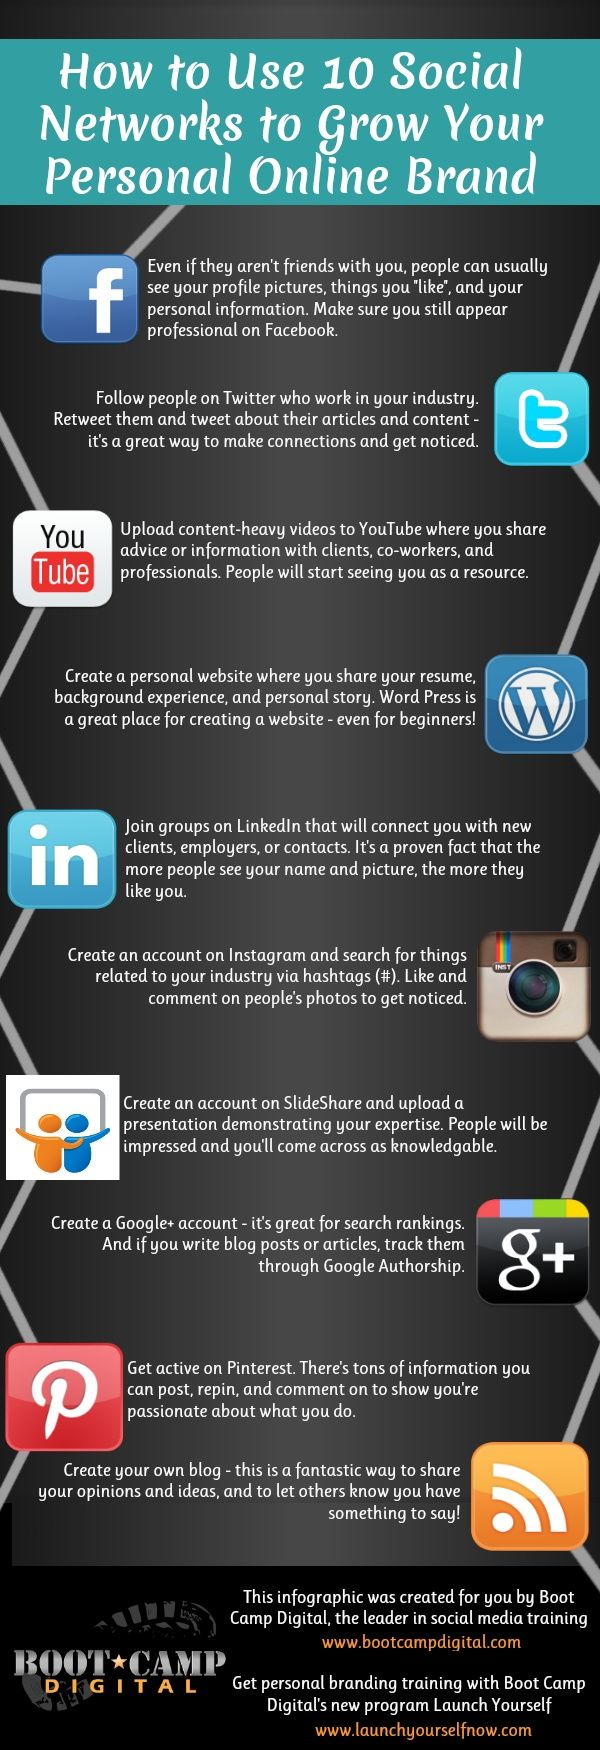 """Launch Yourself: Personal Branding Training's new infographic """"How to Use 10 Social Networks to Grow Your Personal Online Brand"""" covers top social networks like Facebook, Twitter, Pinterest, Slideshare and Wordpress. #SEOPluz"""